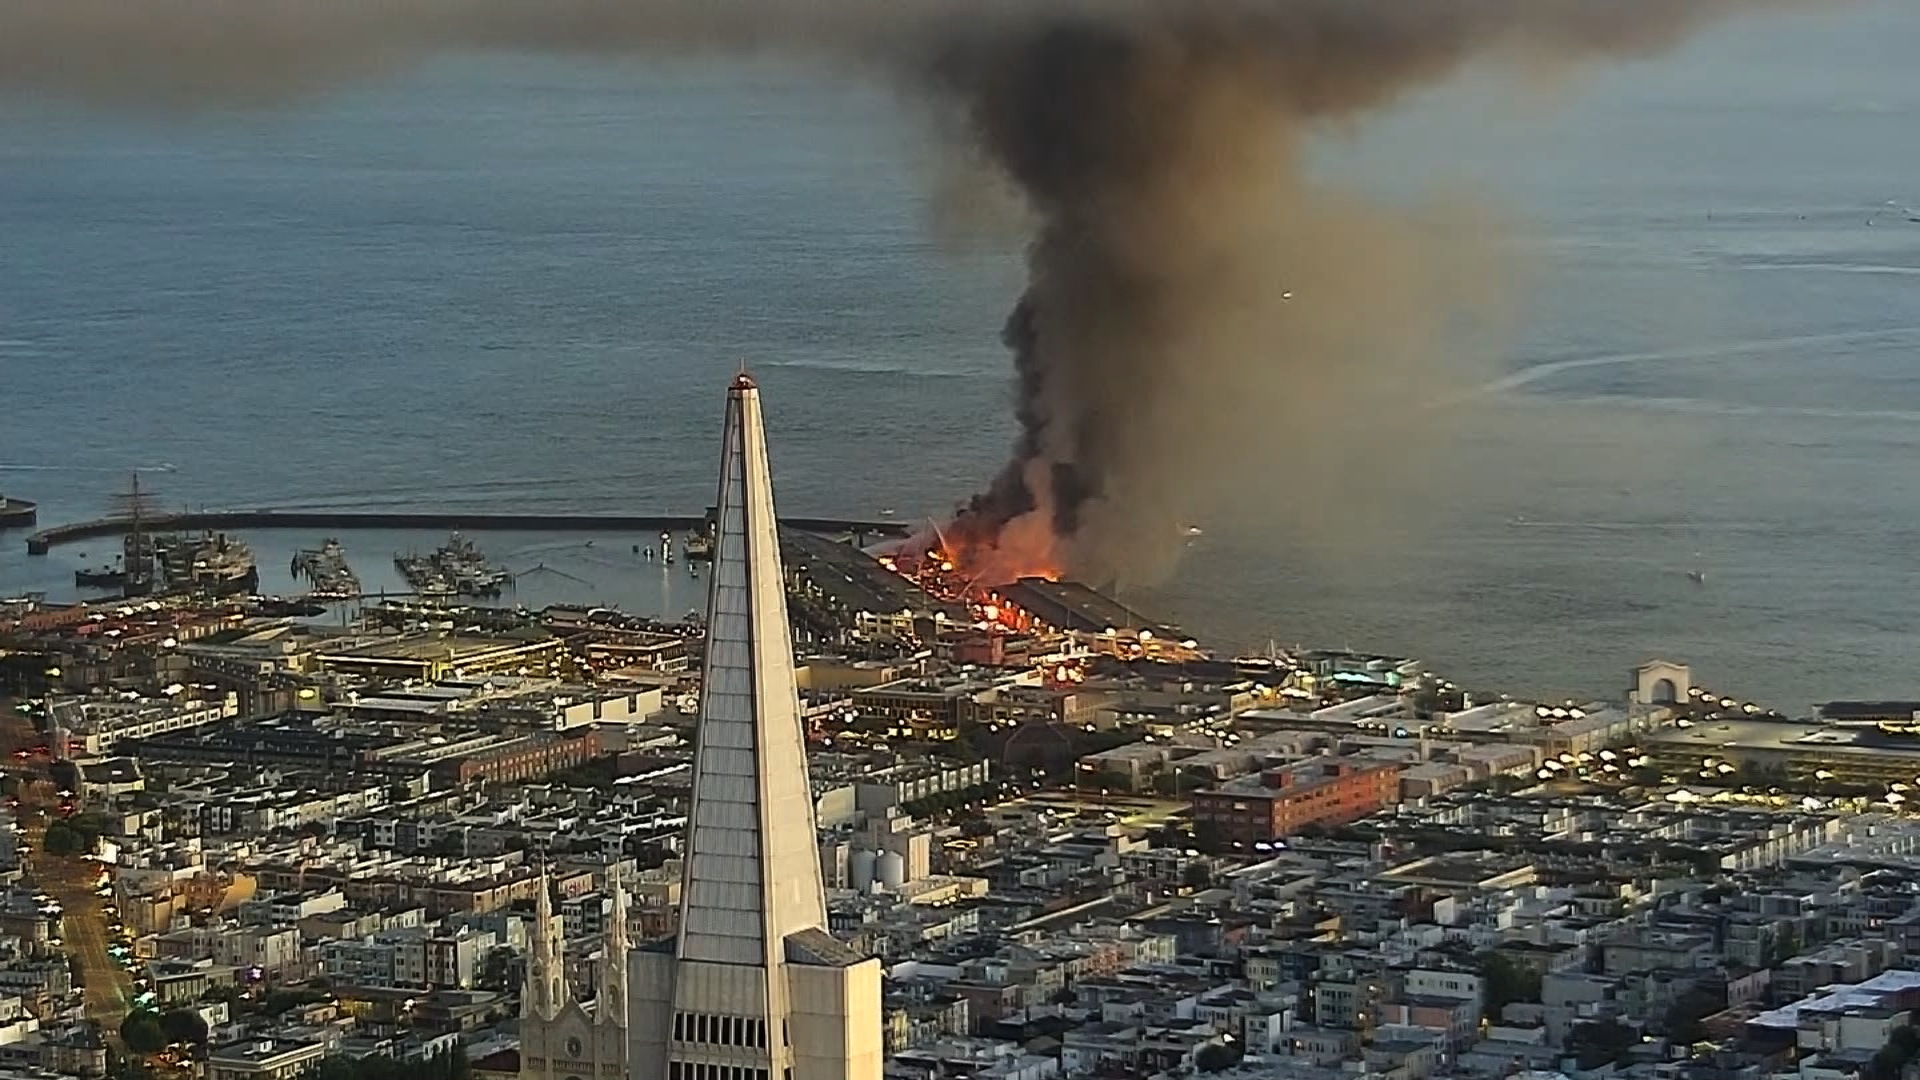 San Francisco firefighters battled a a warehouse fire at Pier 45 on May 23, 2020. (KPIX via CNN)